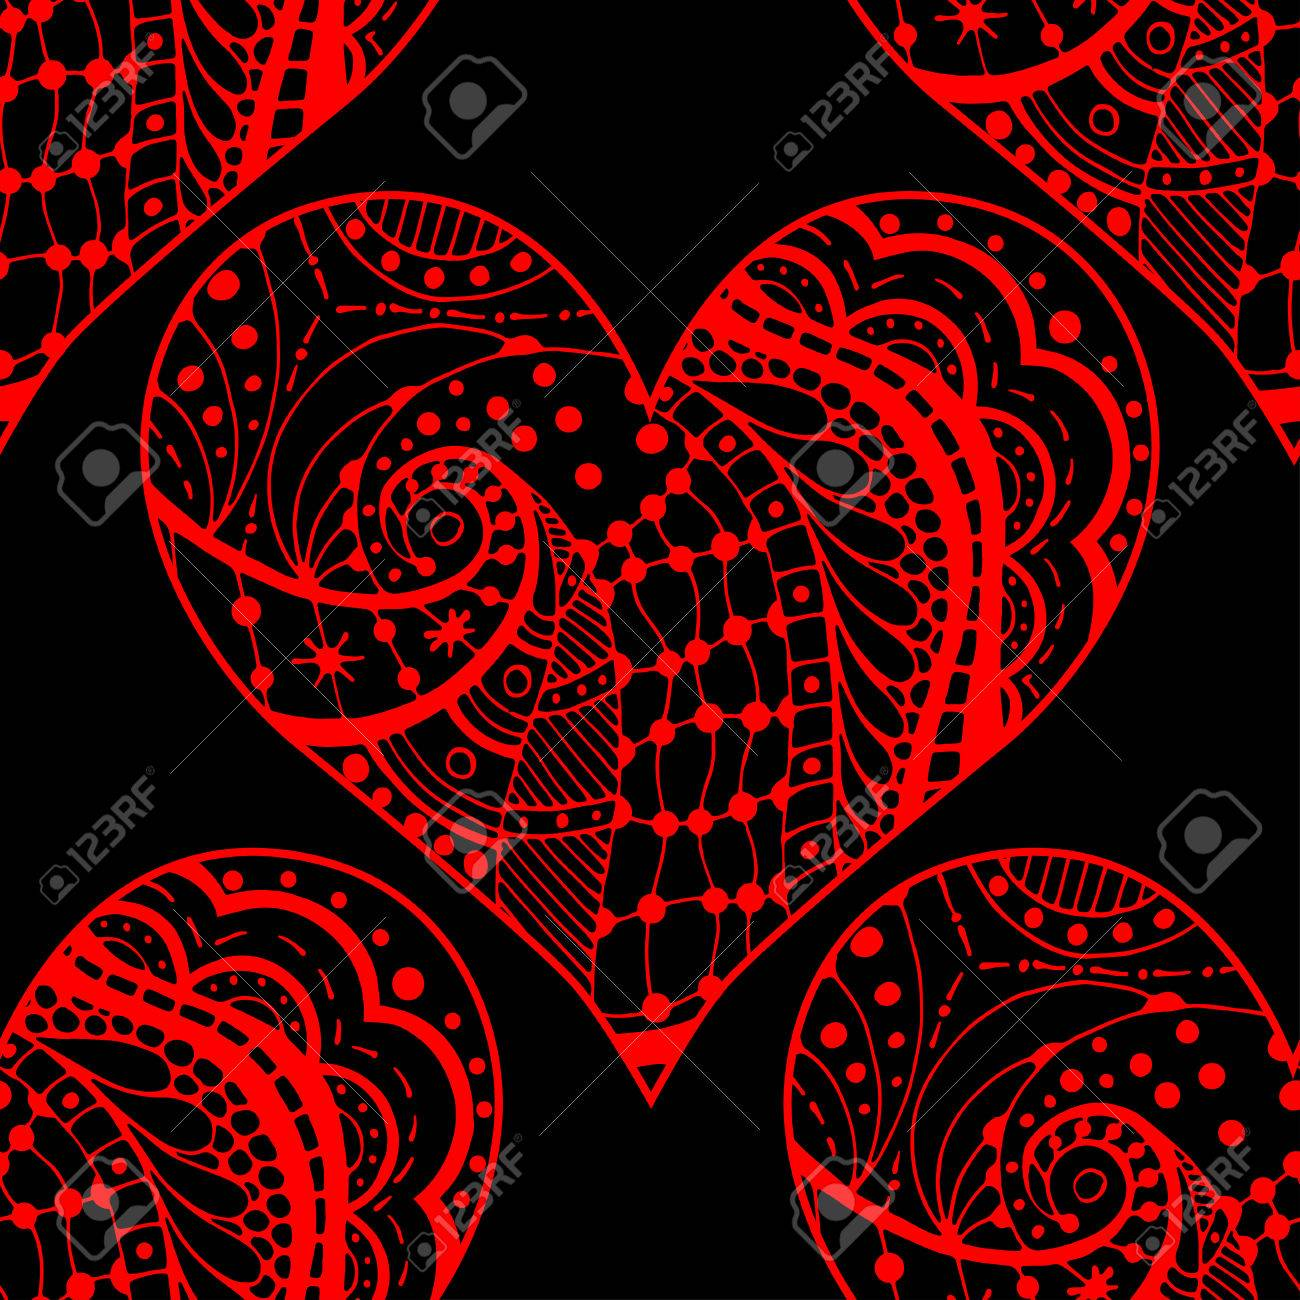 Red On Black Hand Drawn Seamless Pattern With Hearts Use For